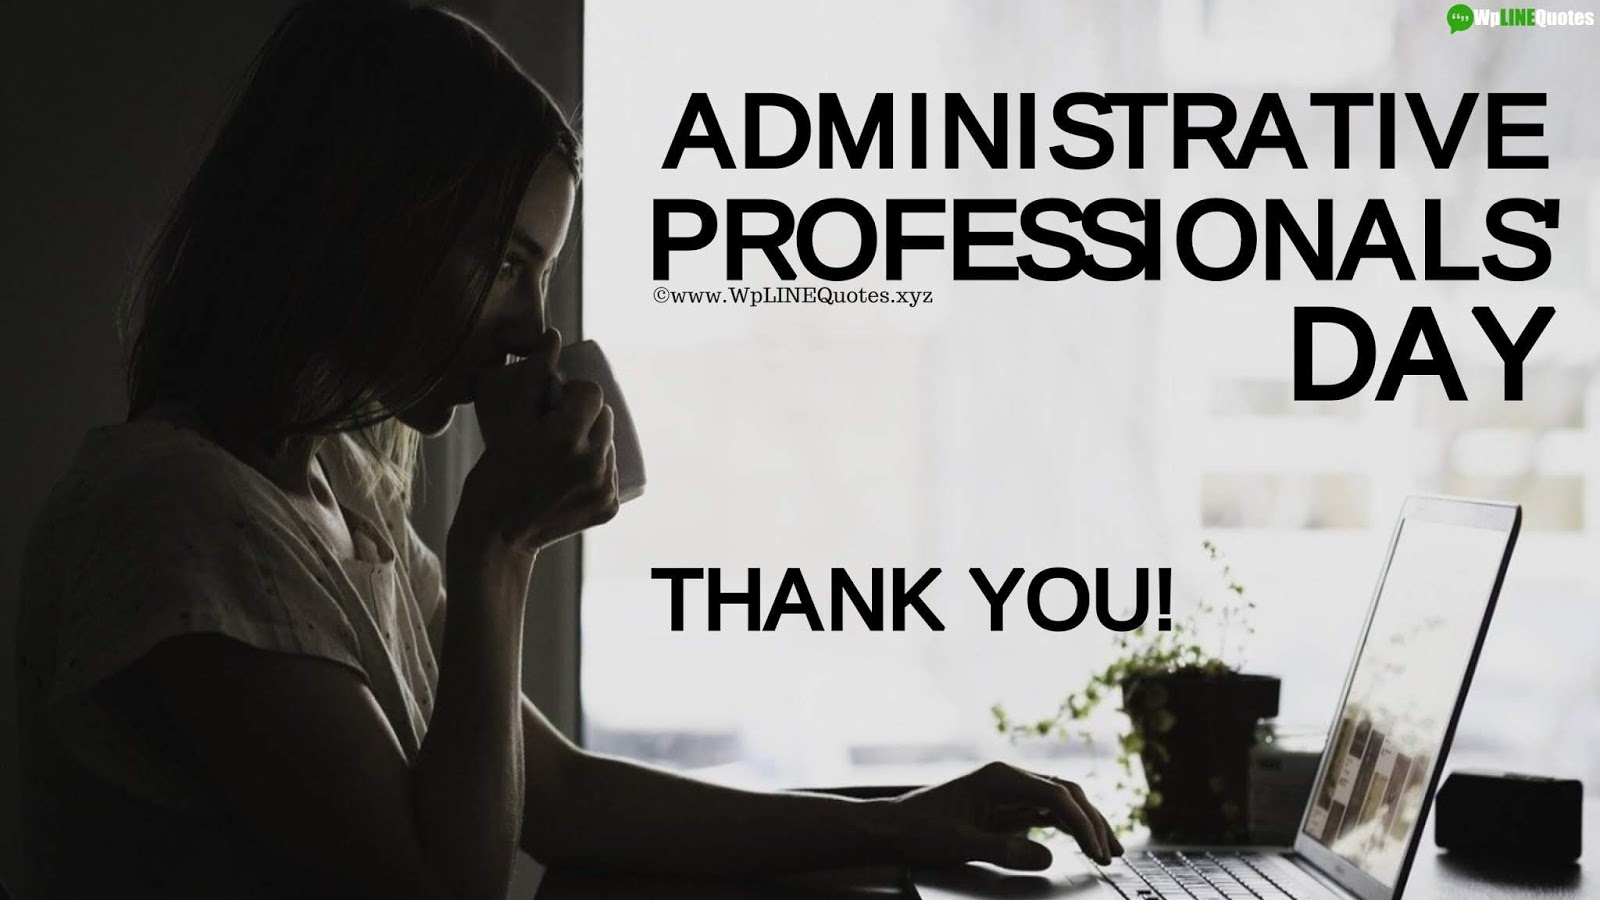 Administrative Professionals' Day Quotes, Wishes, Messages, Cards, Meaning, History, Facts, Images, Pictures, Pics, Wallpaper